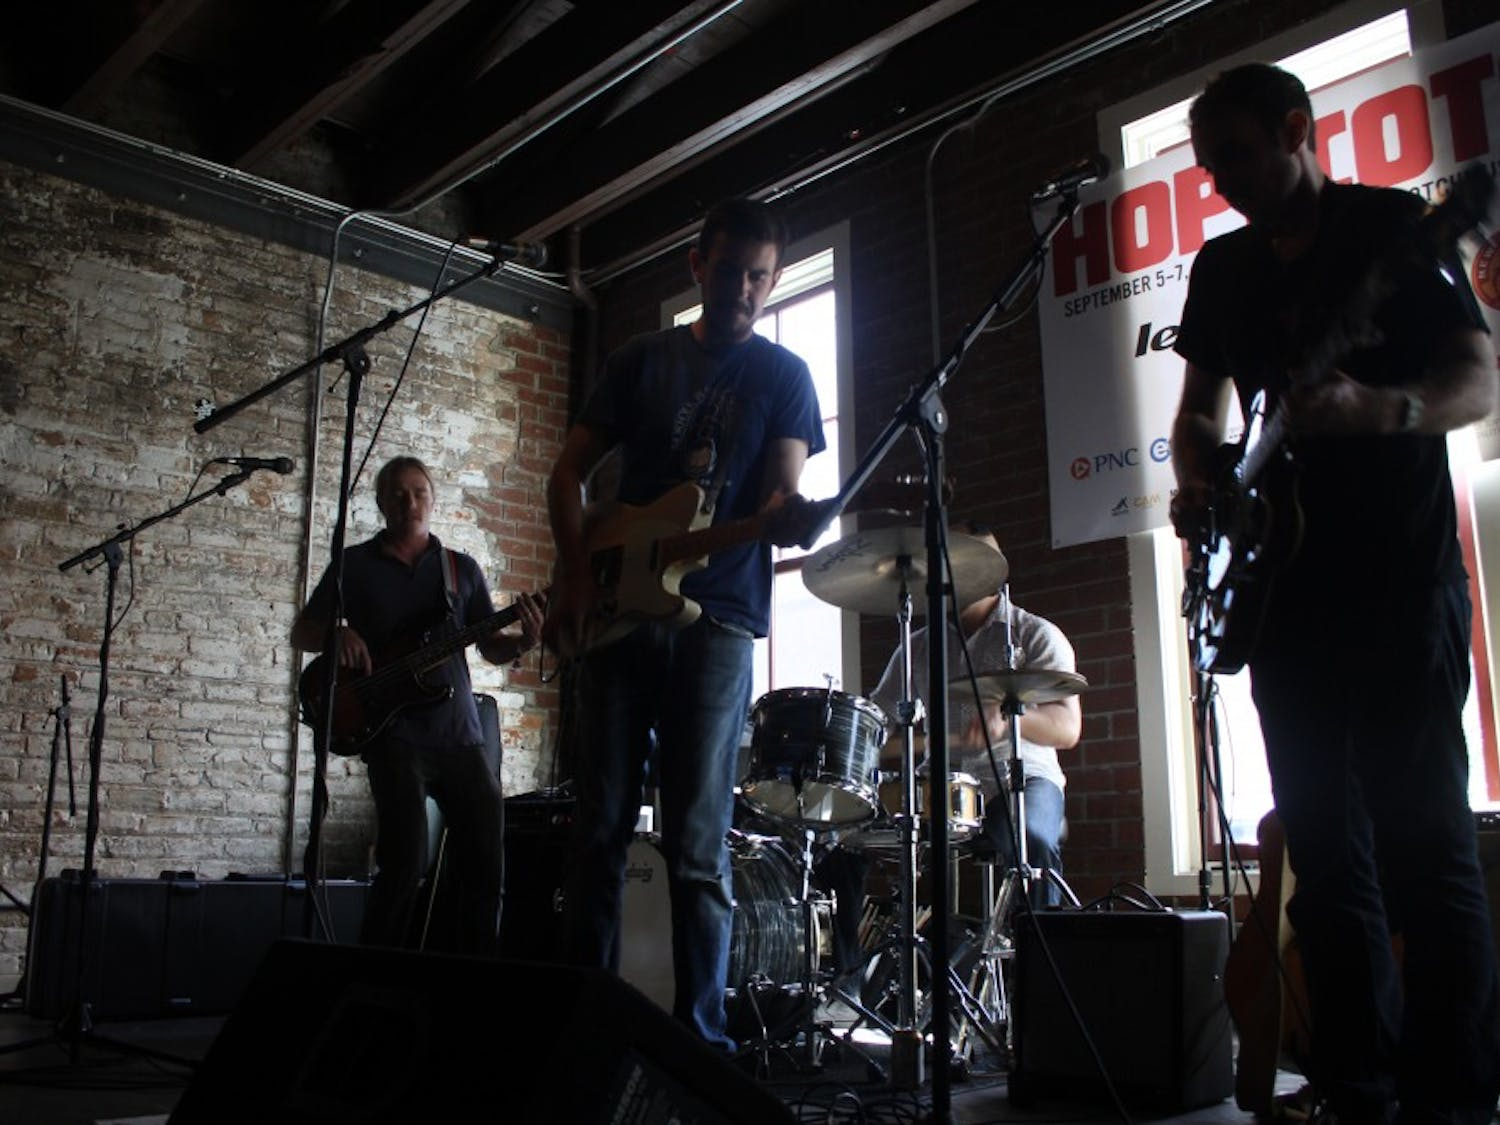 The Hopscotch Music Festival hosted various bands throughout the day in music venues and bars.